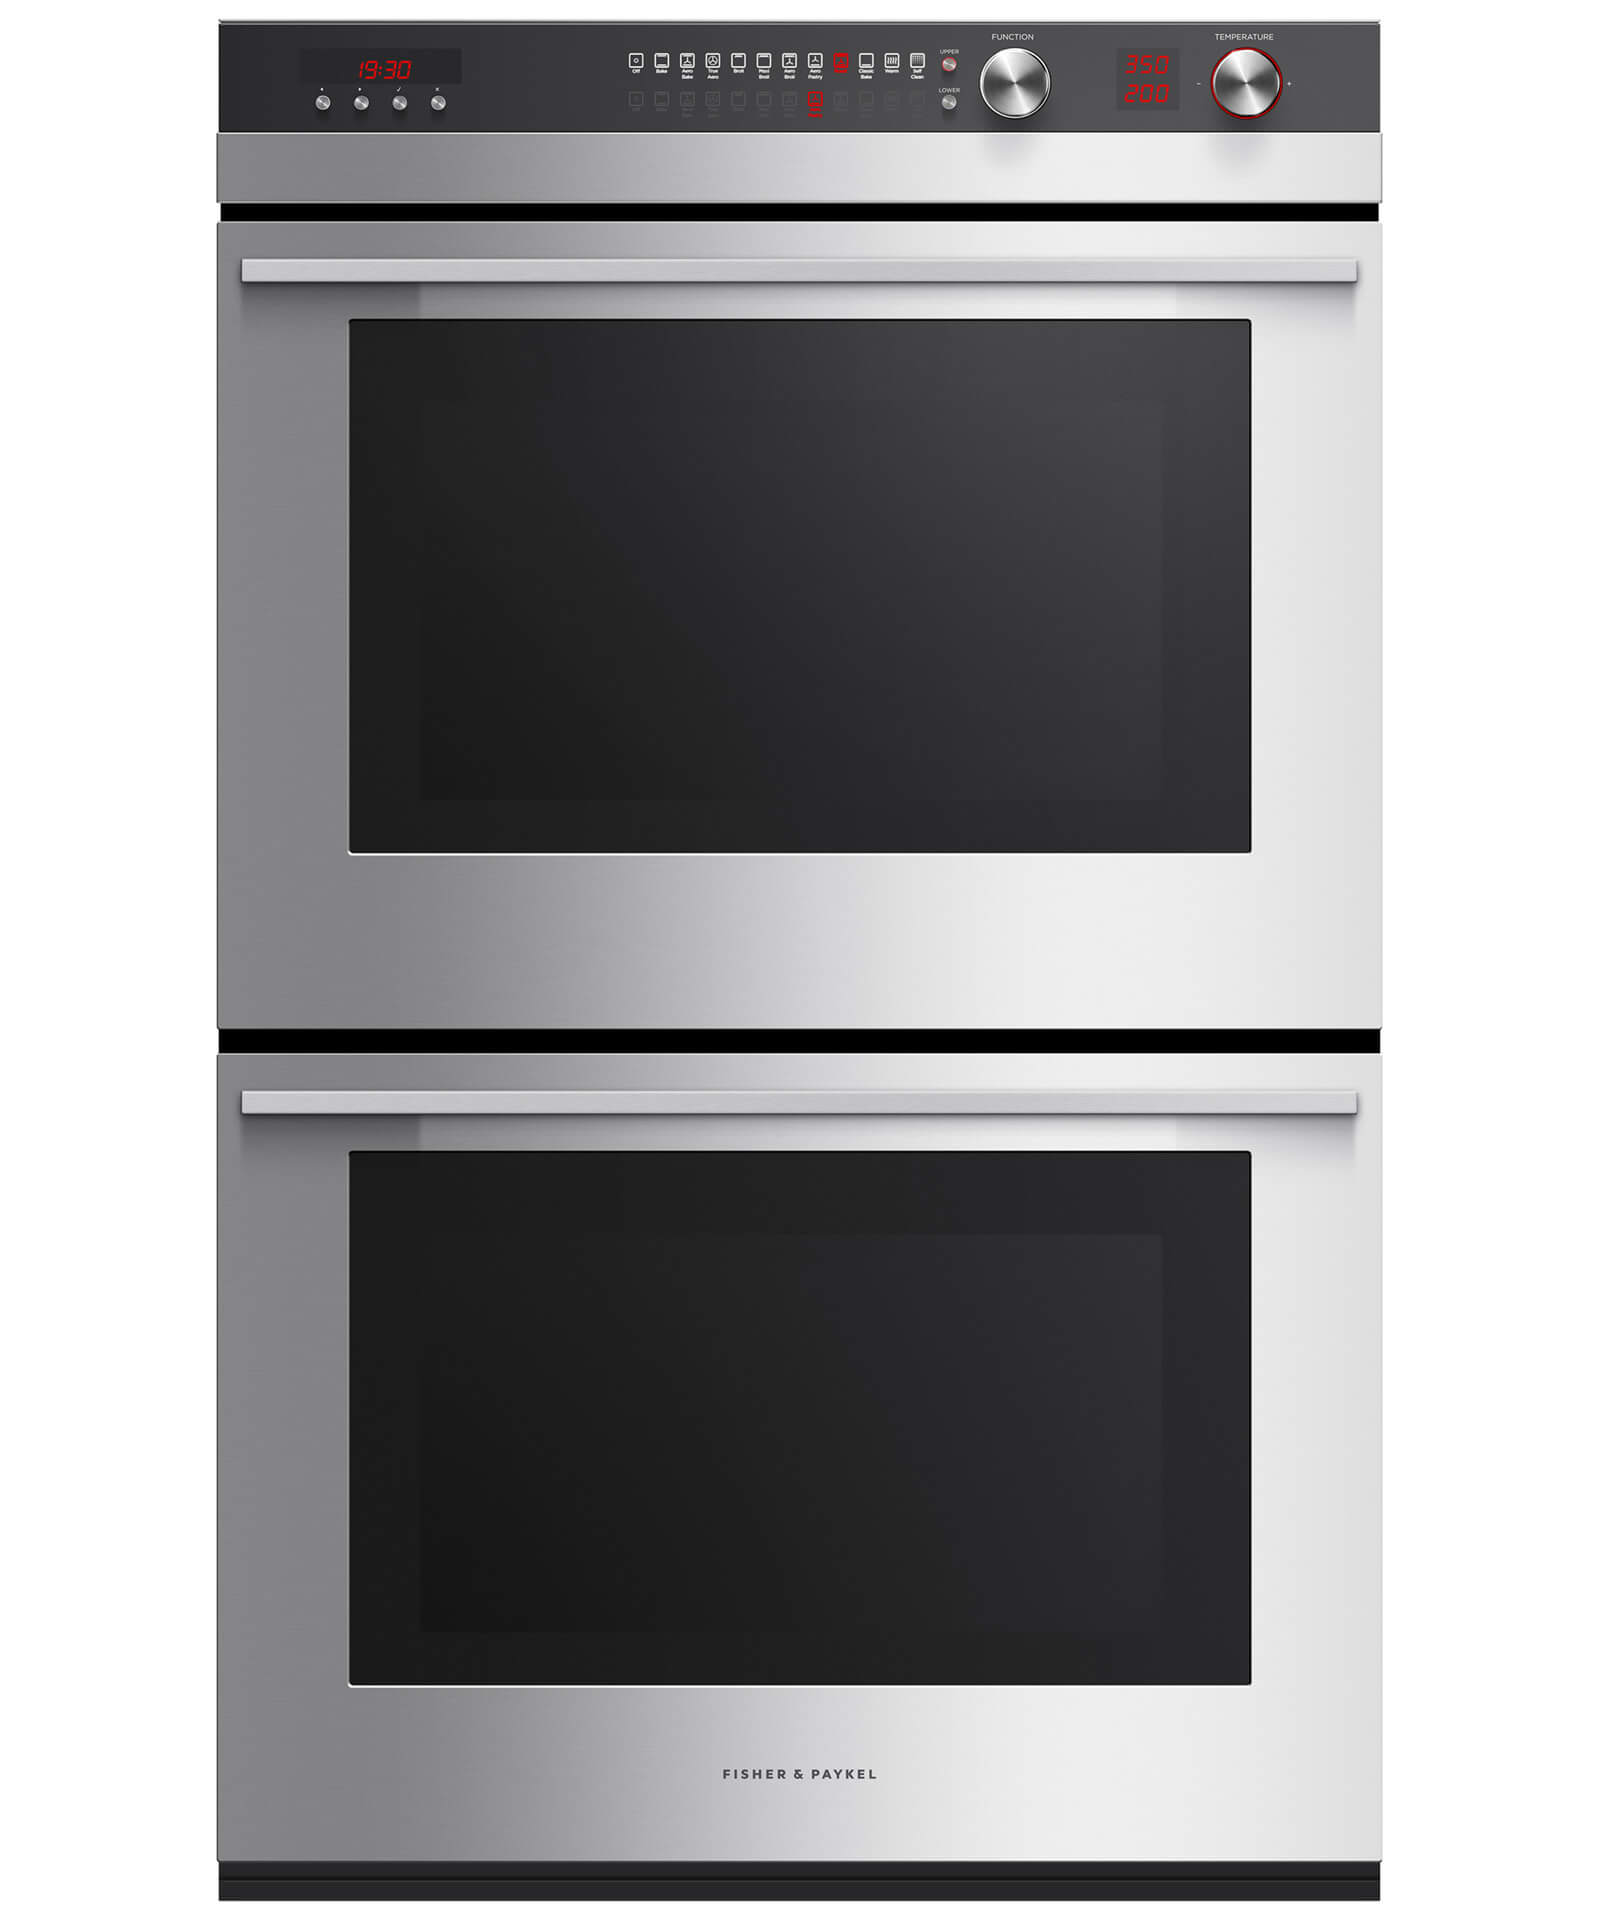 """Model: OB30DTEPX3_N 